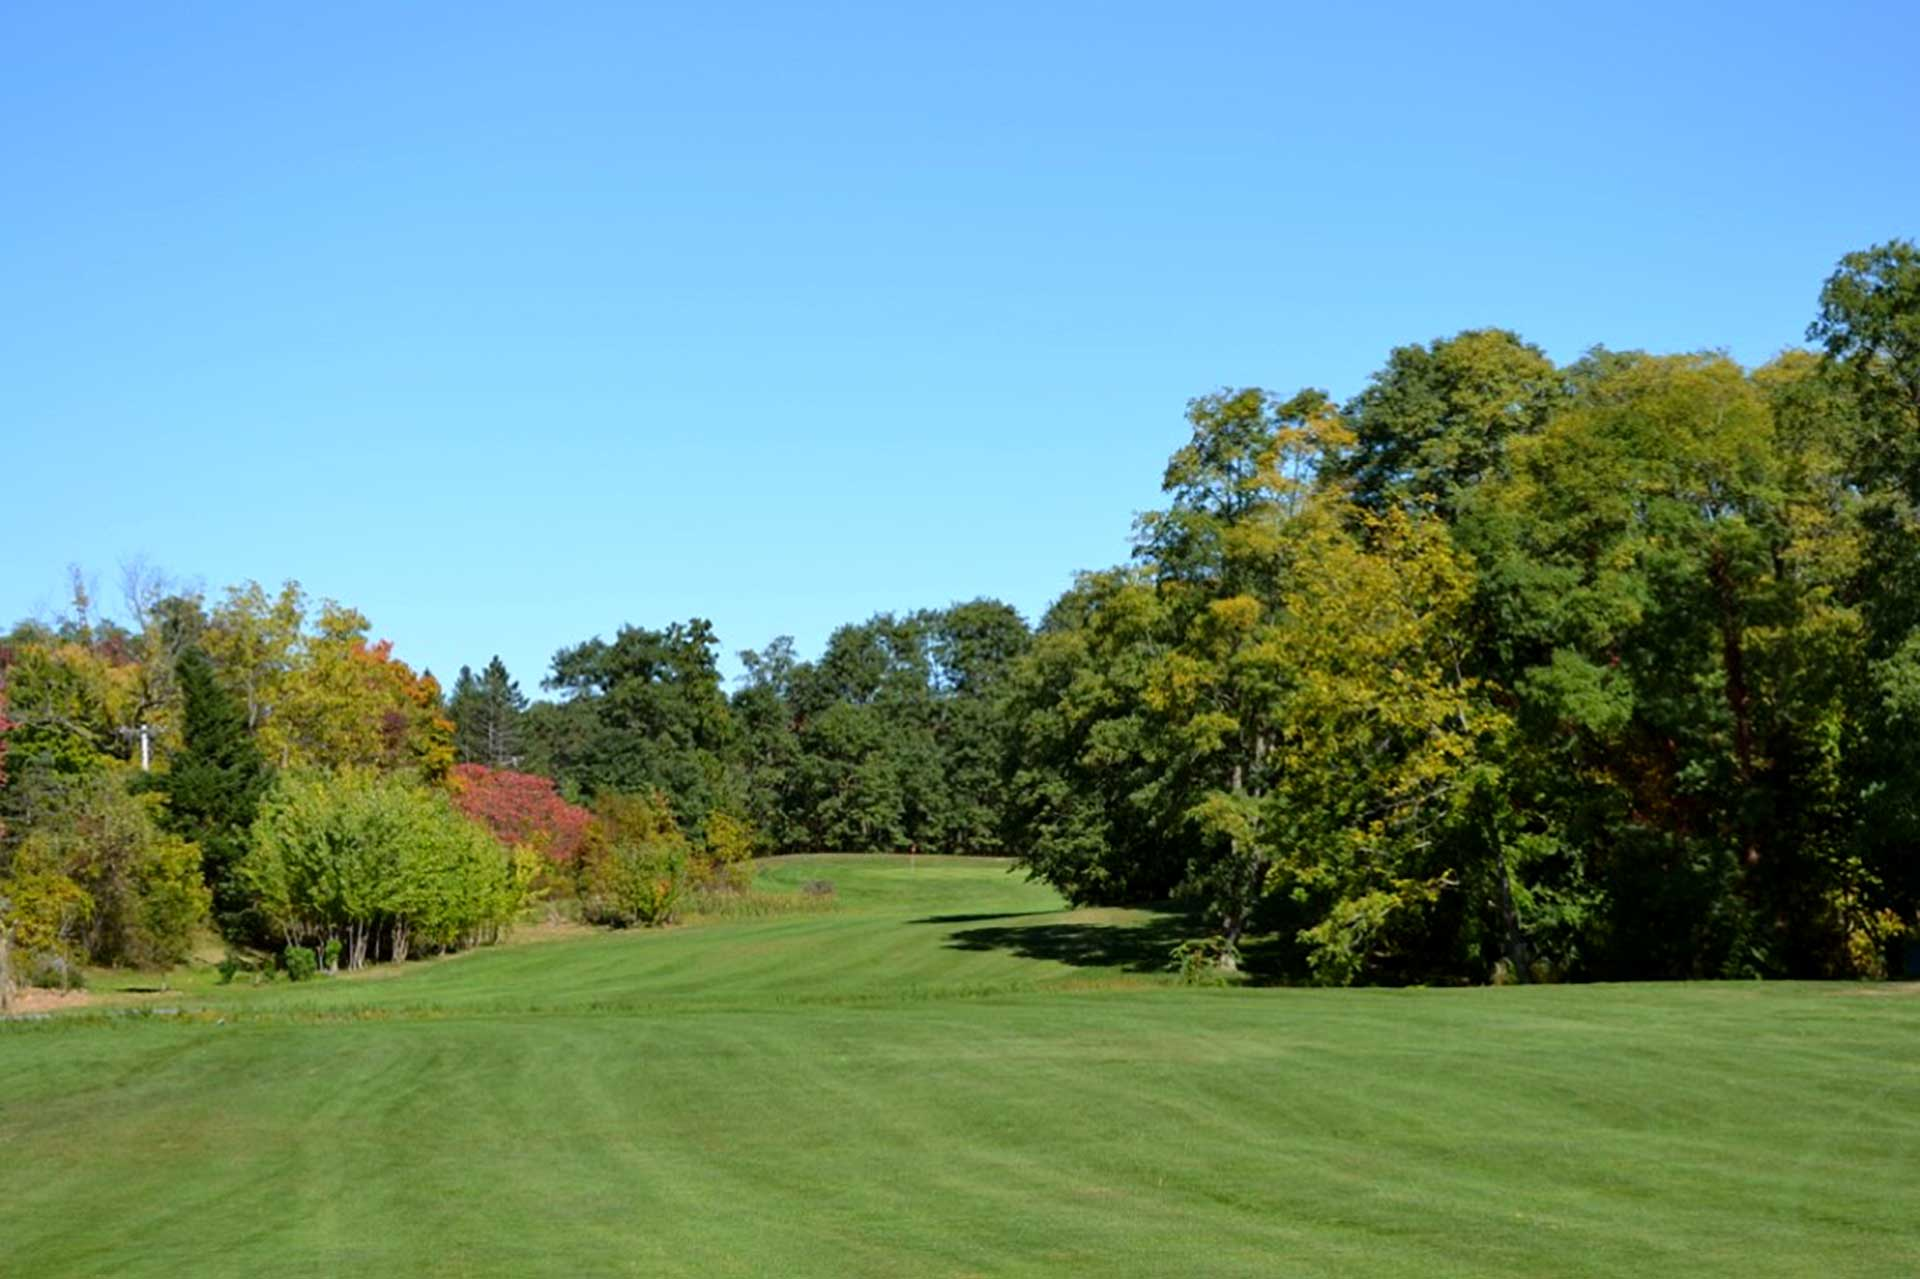 Pheasant Hollow Golf Course East Greenbush, NY